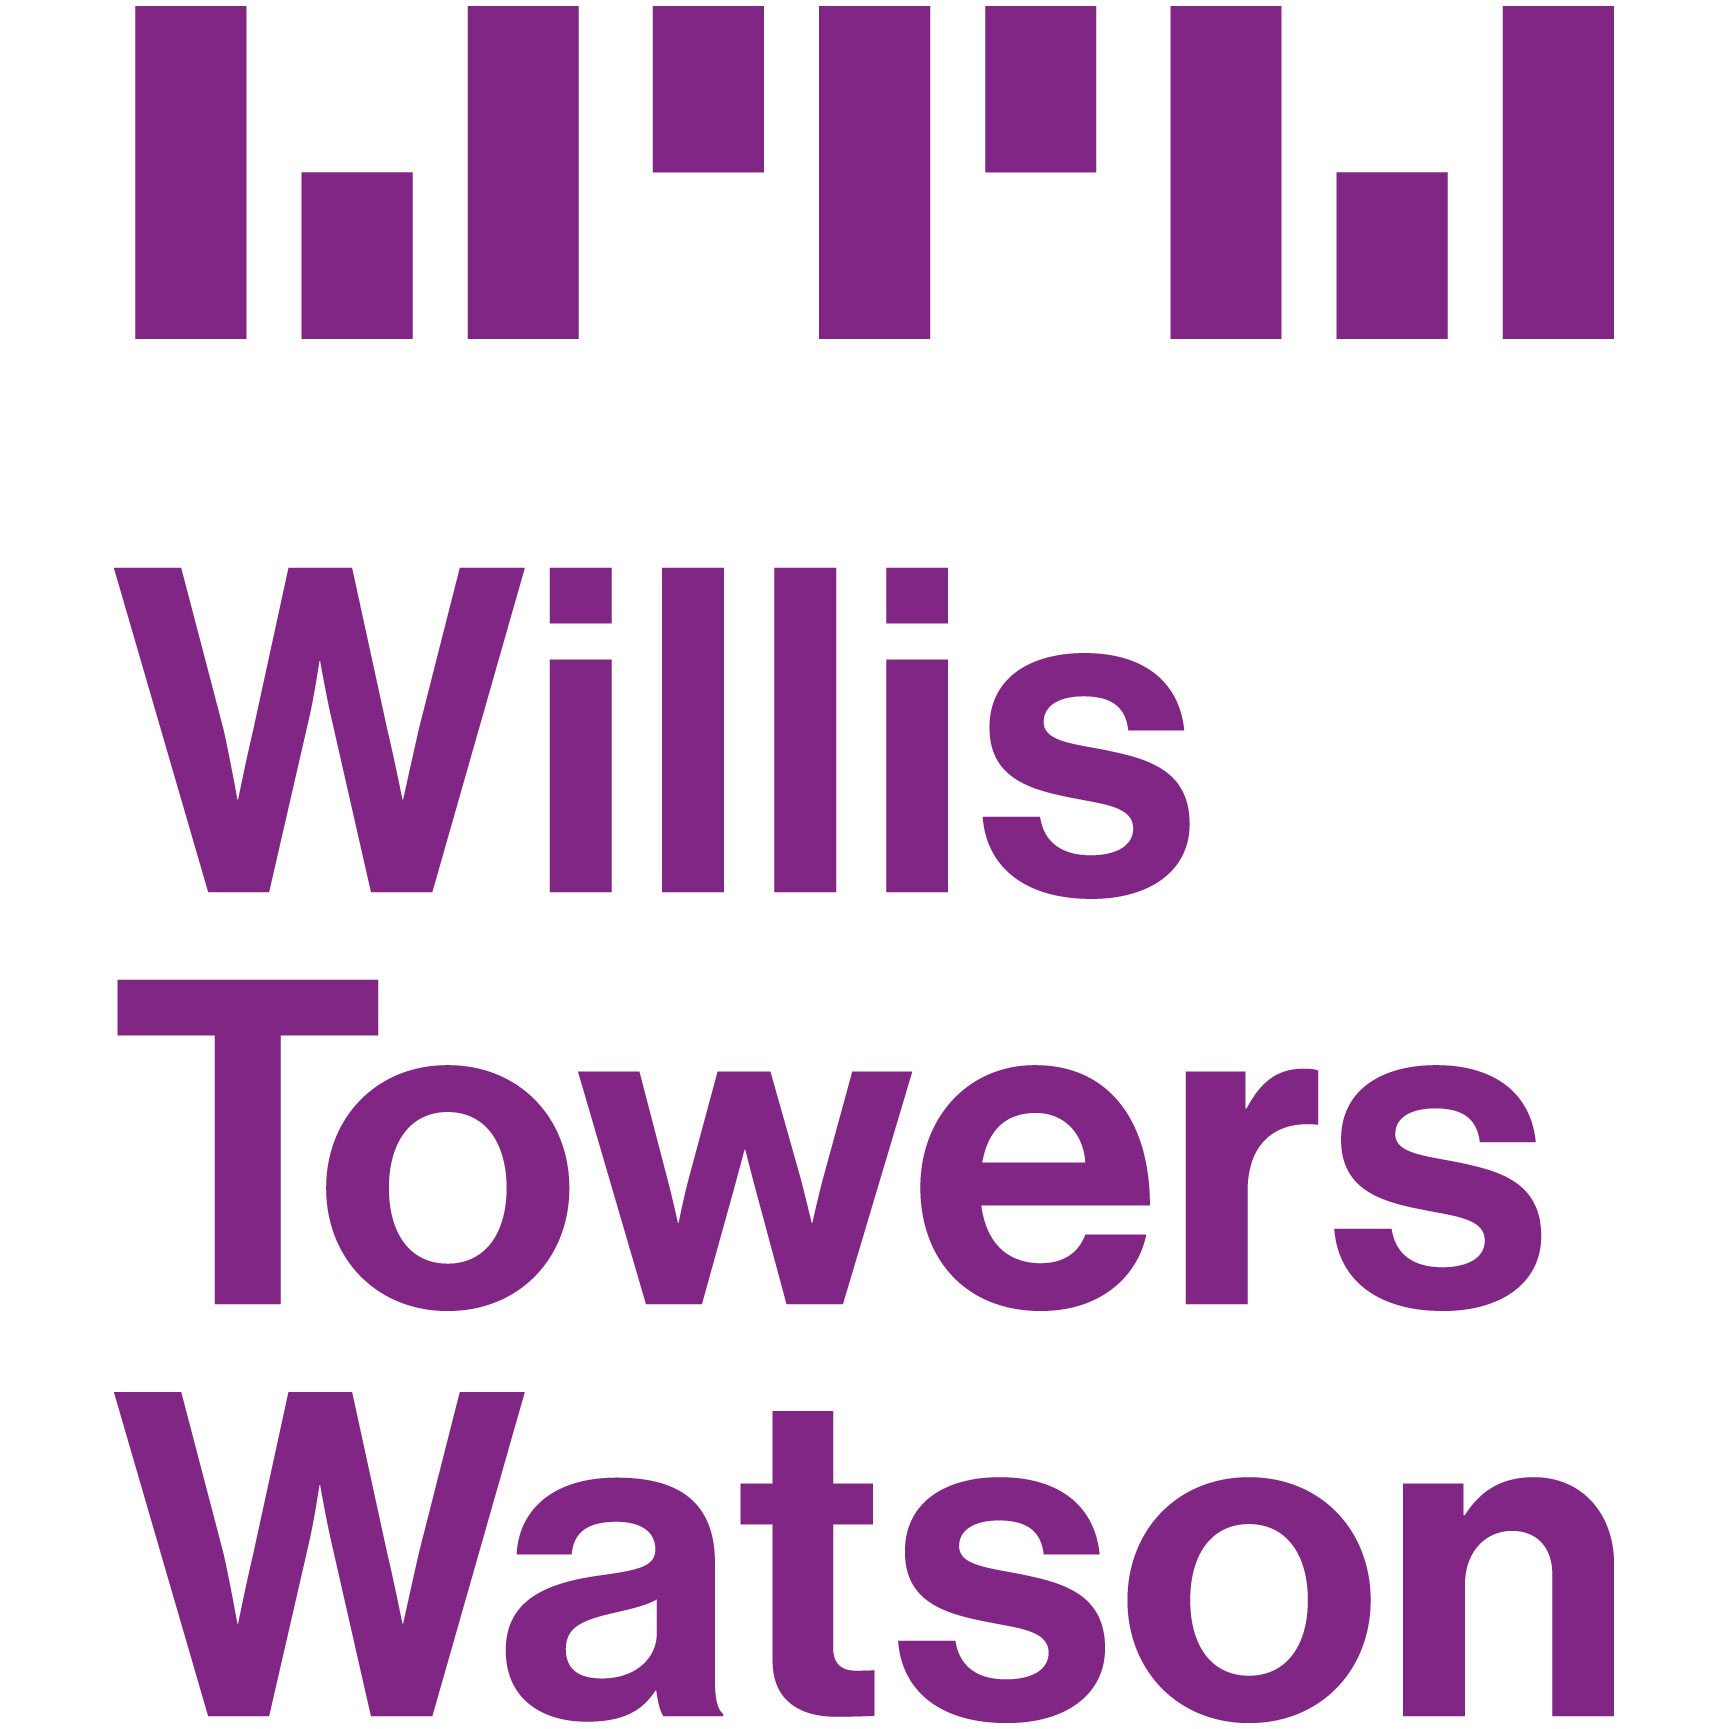 Ant Leake Credits include - Willis Towers Watson